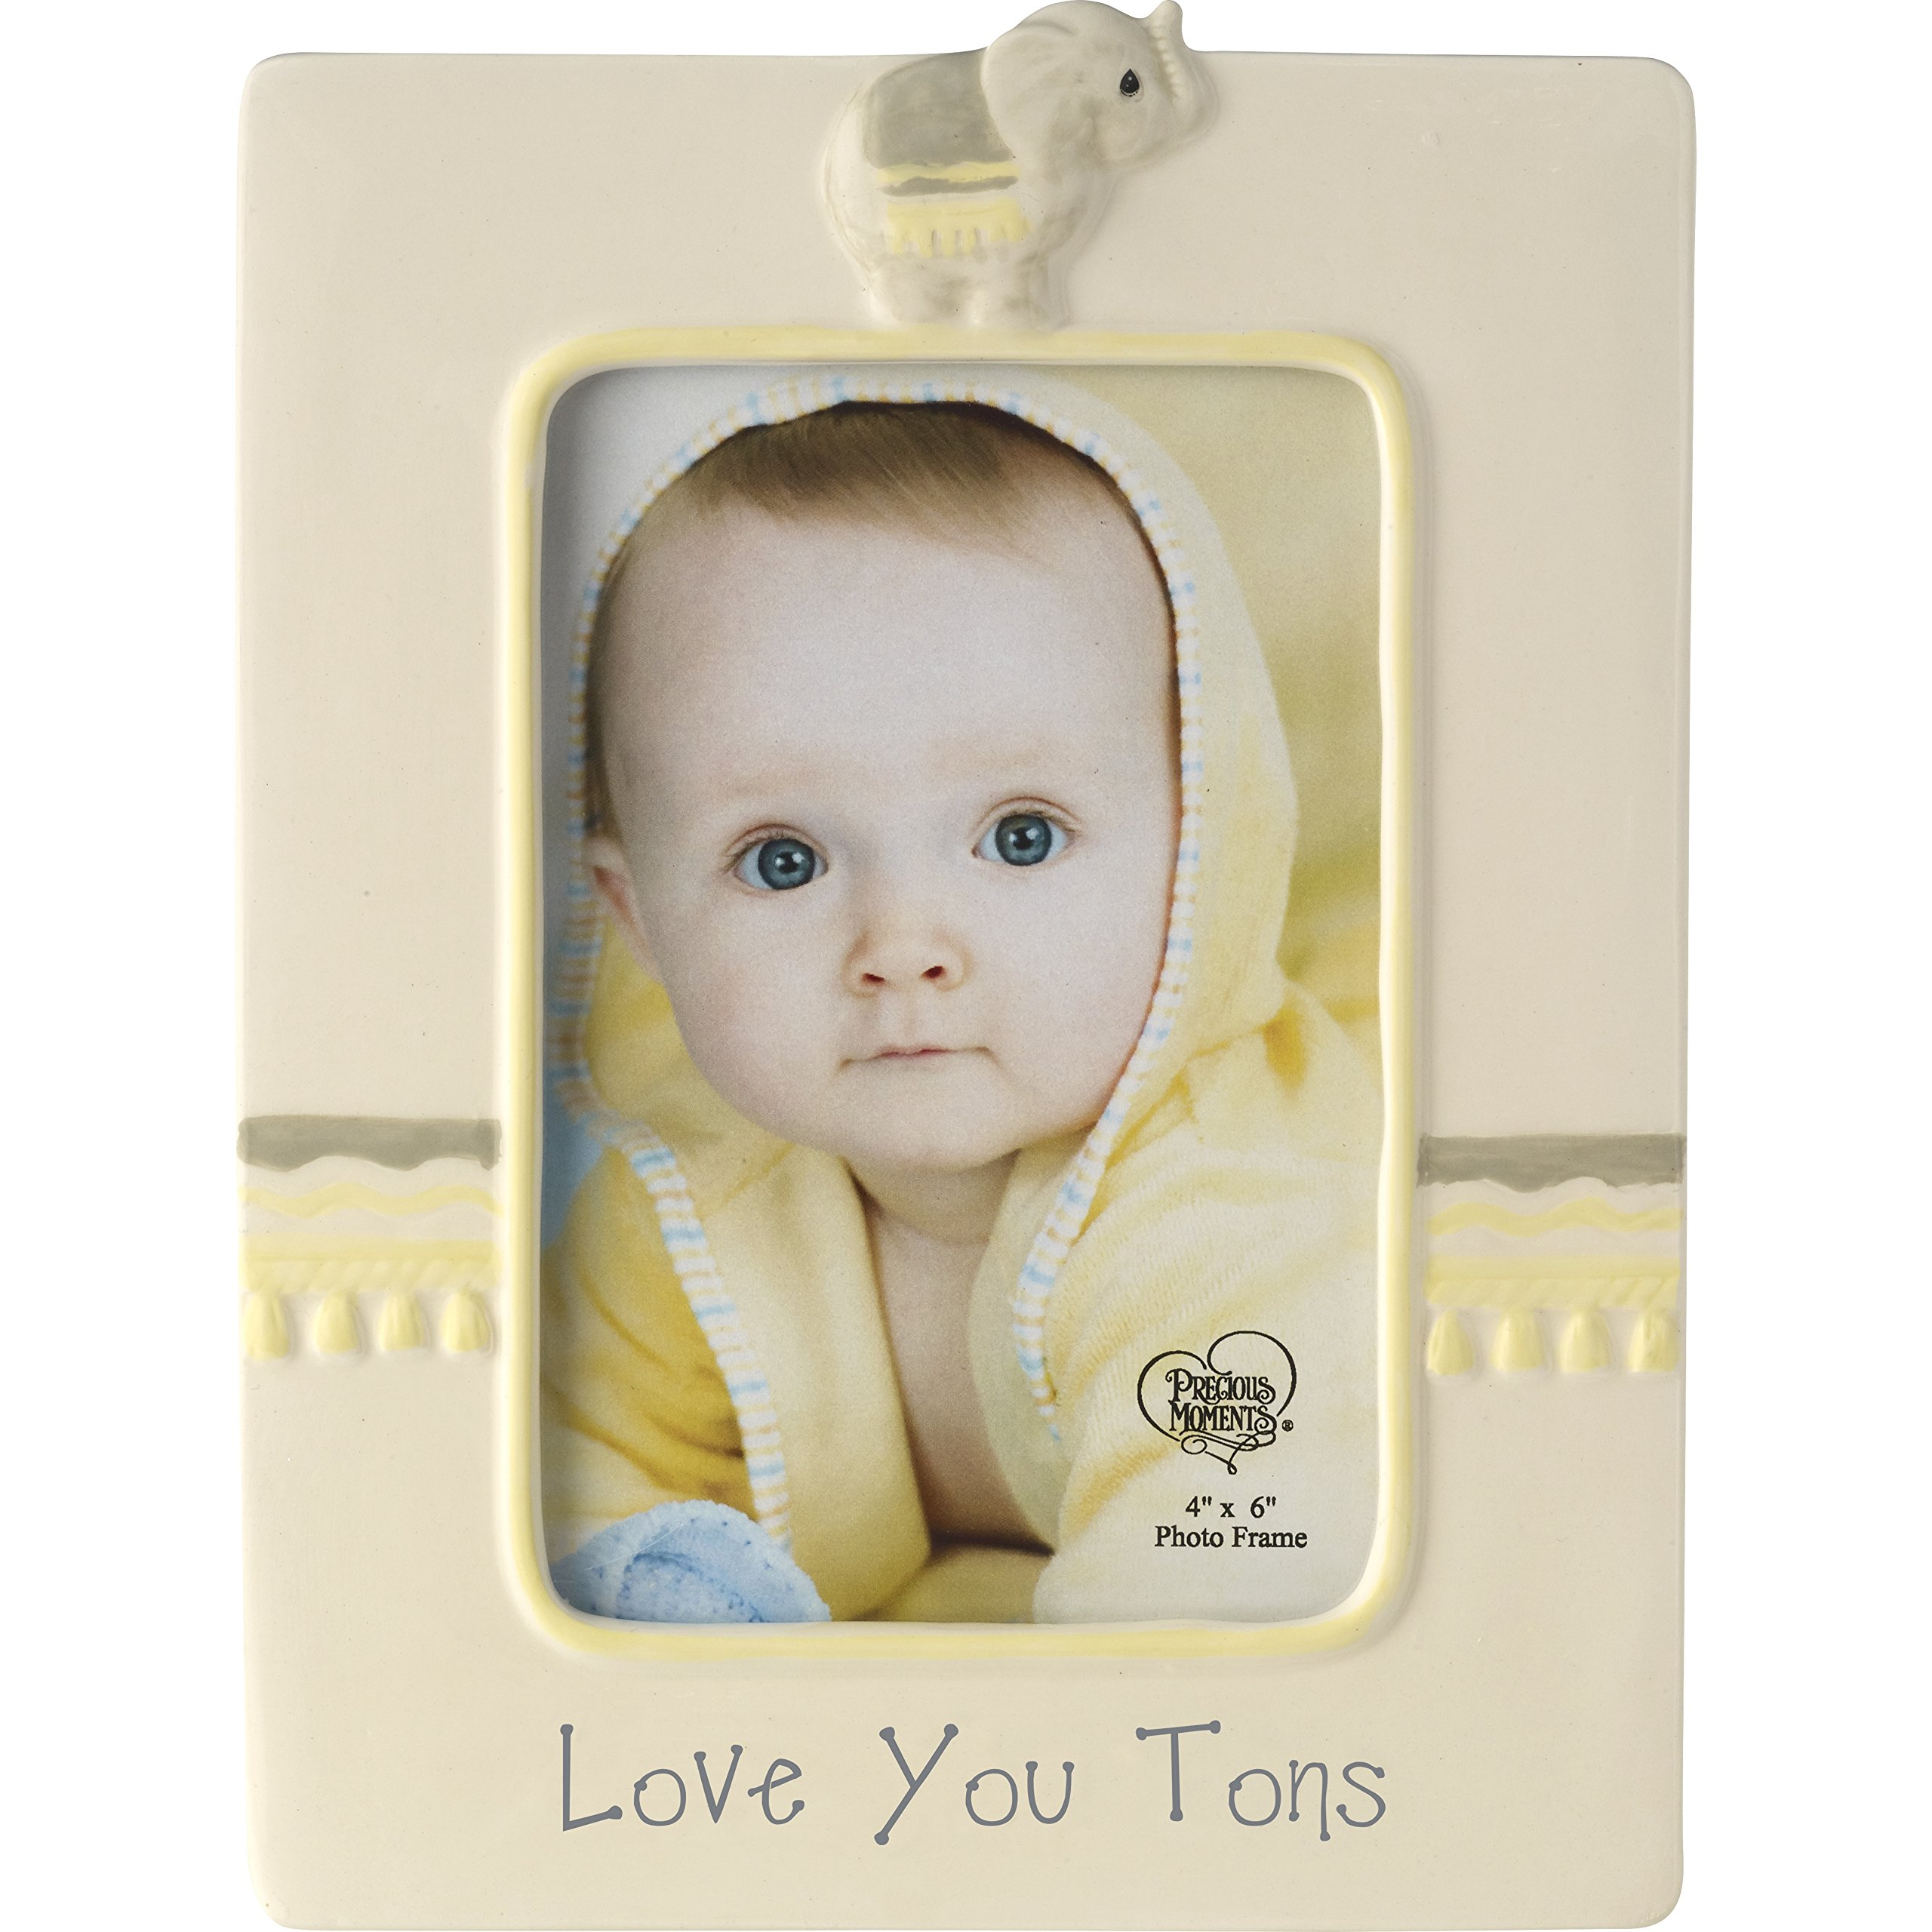 Precious Moments Love You Tons 4x6 Photo Frame With Tuk Elephant 12-Inch Plush Baby Gift Set